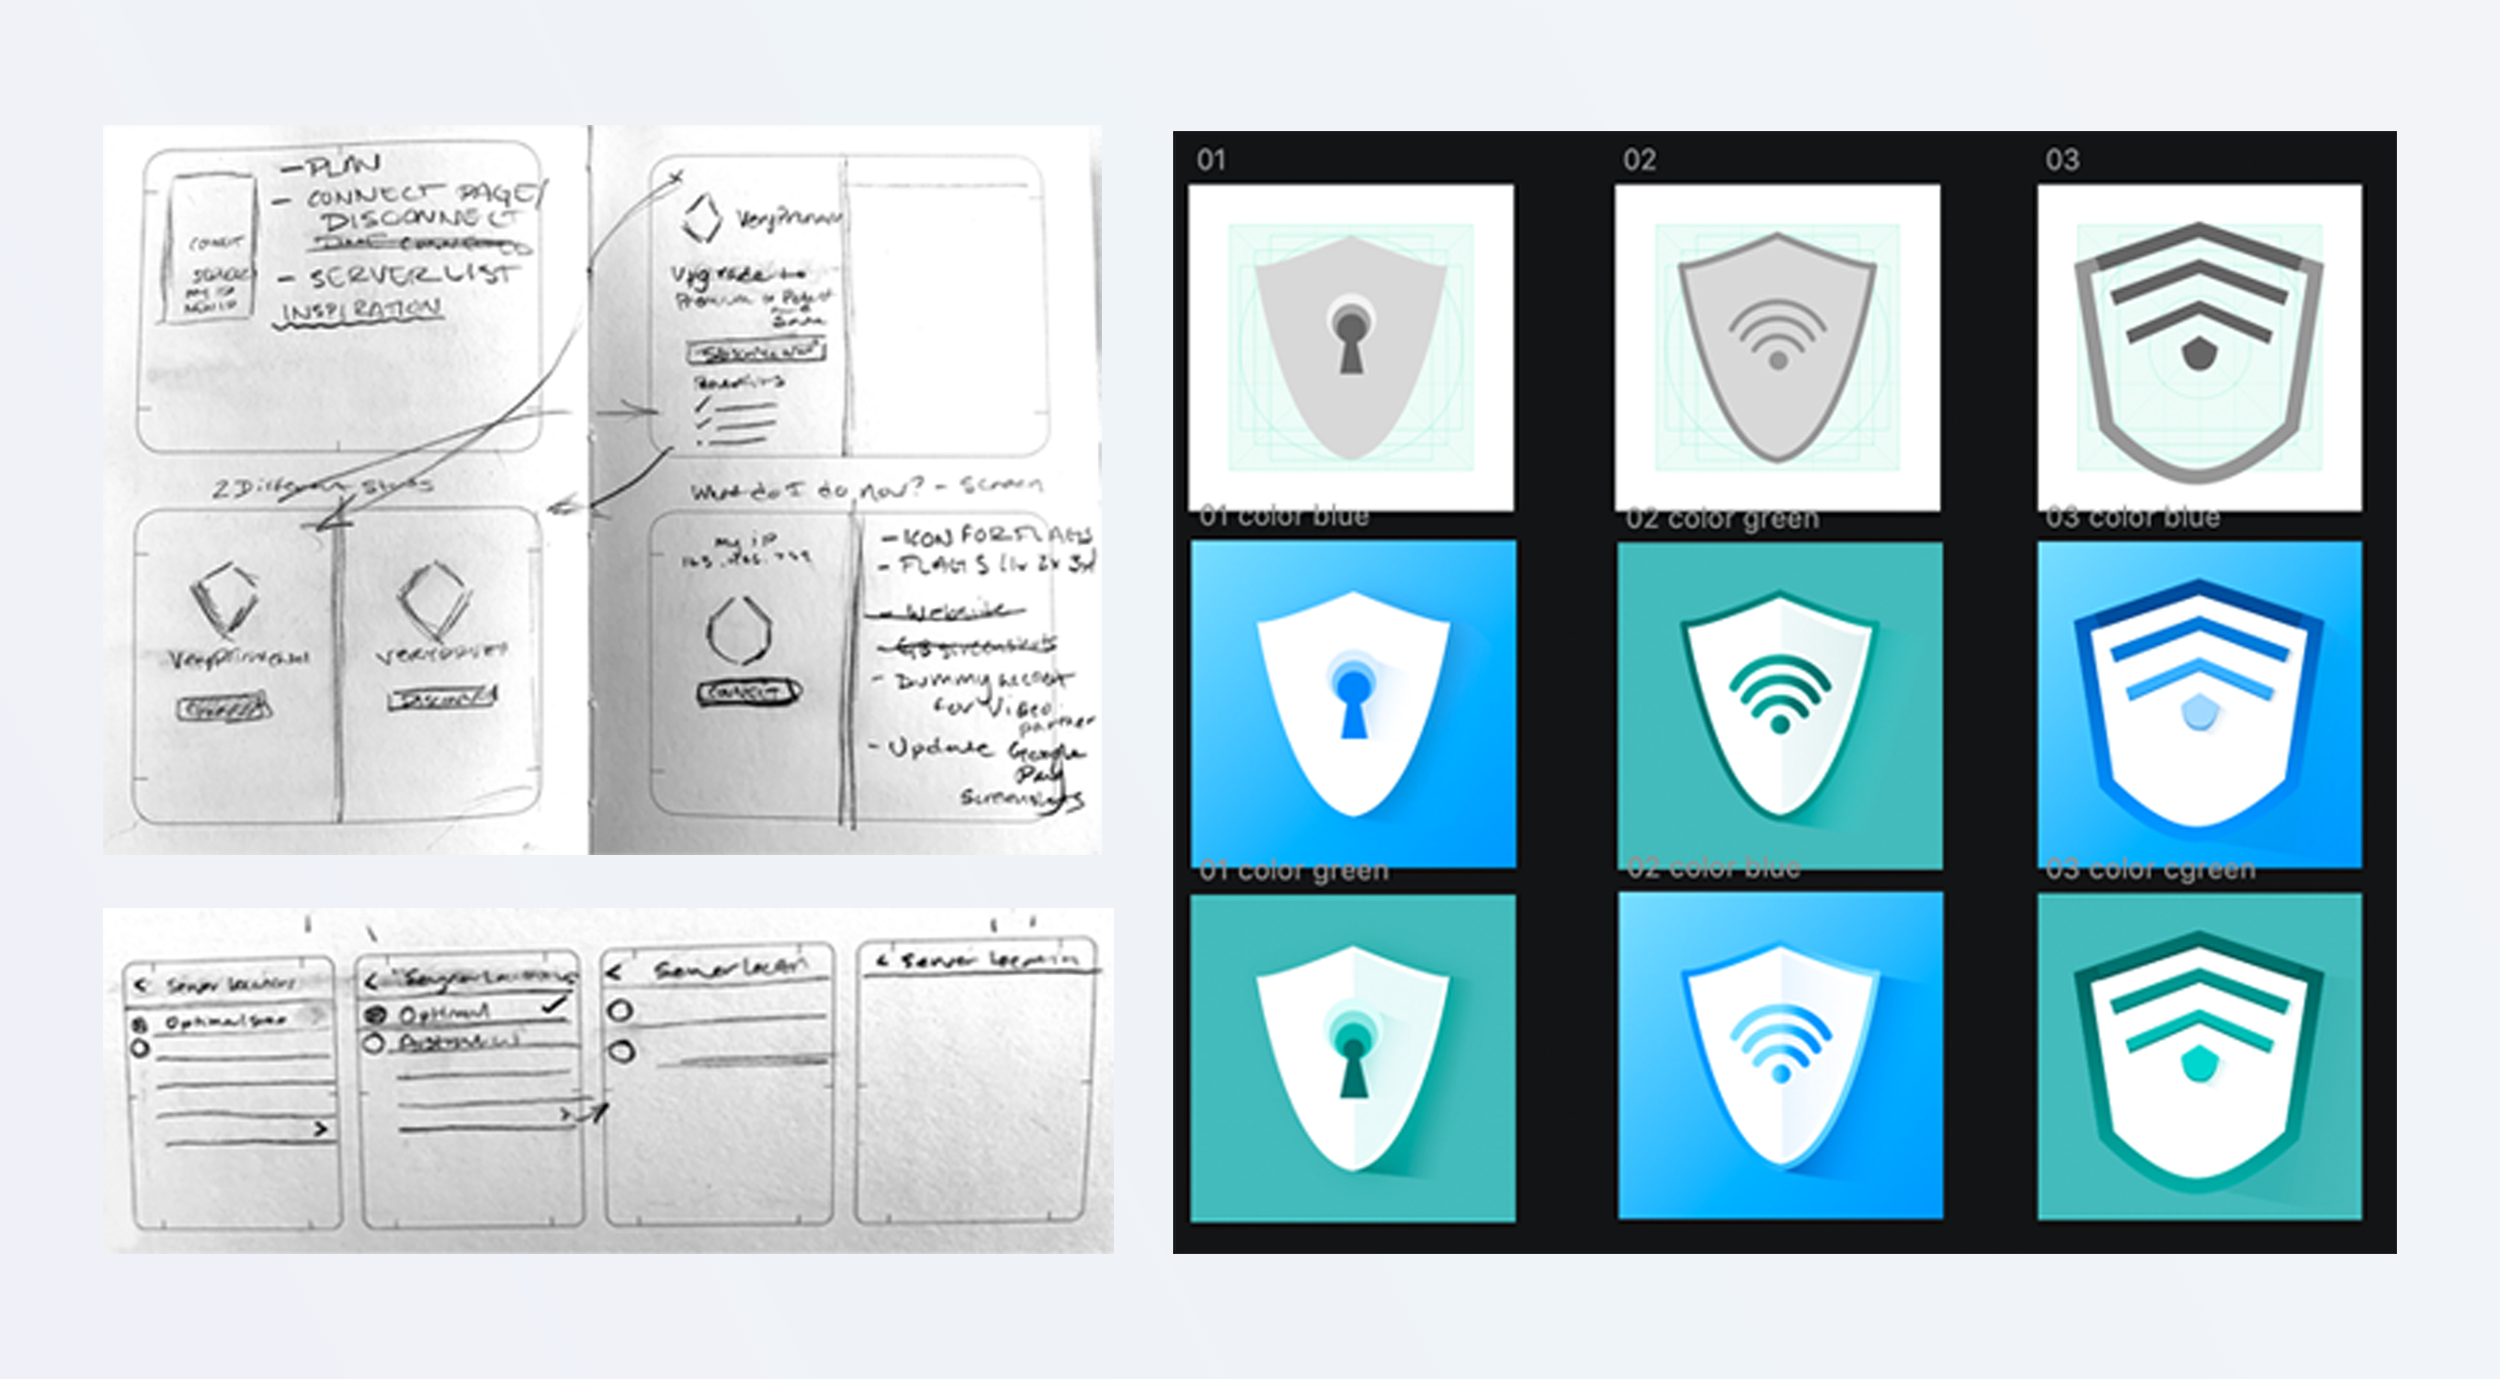 SketchesWireframes_02.png